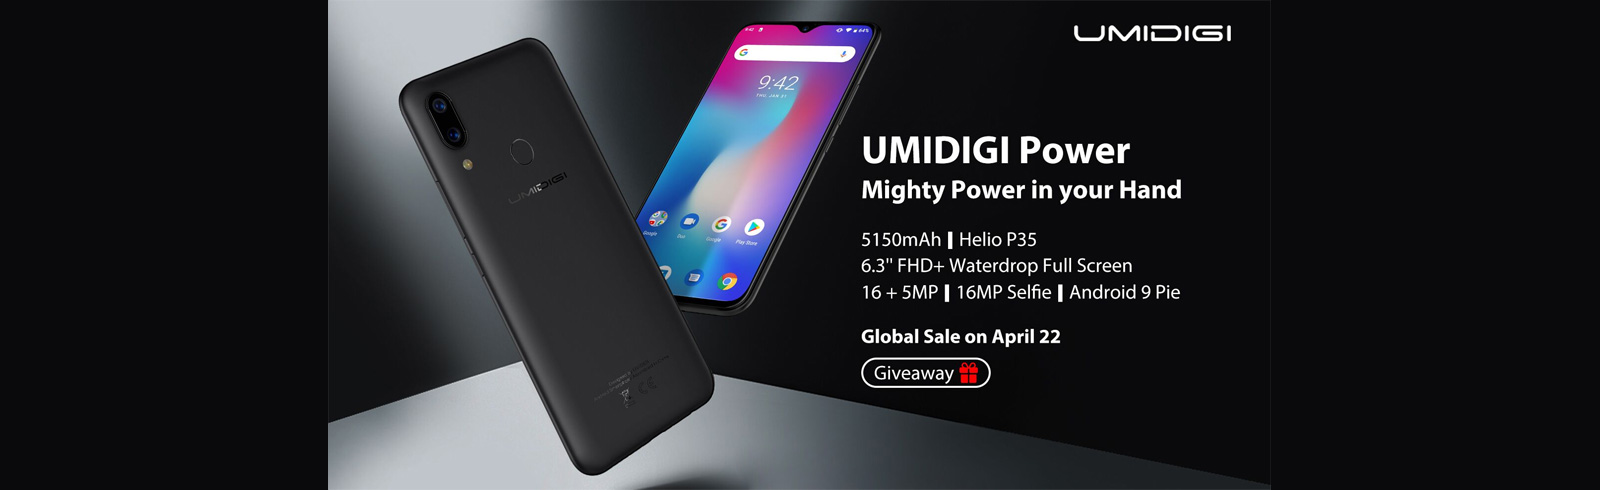 UMIDIGI Power official specifications are unveiled, will go on sale on April 22nd